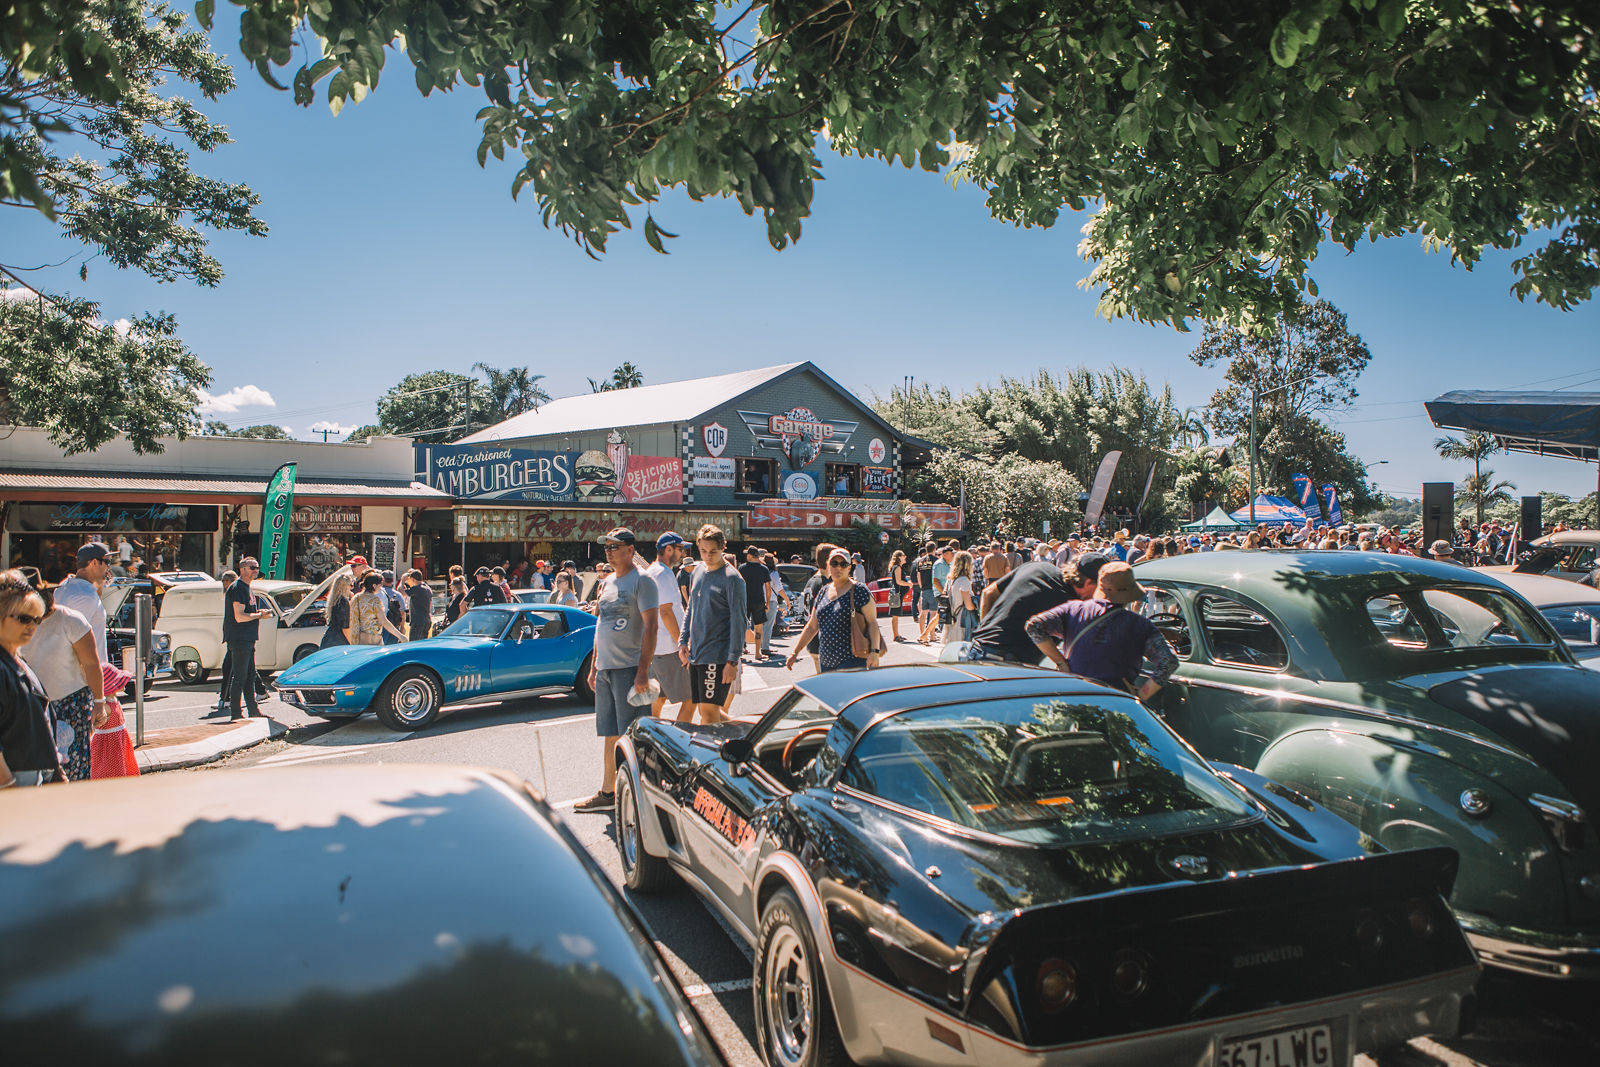 Cars and crowd